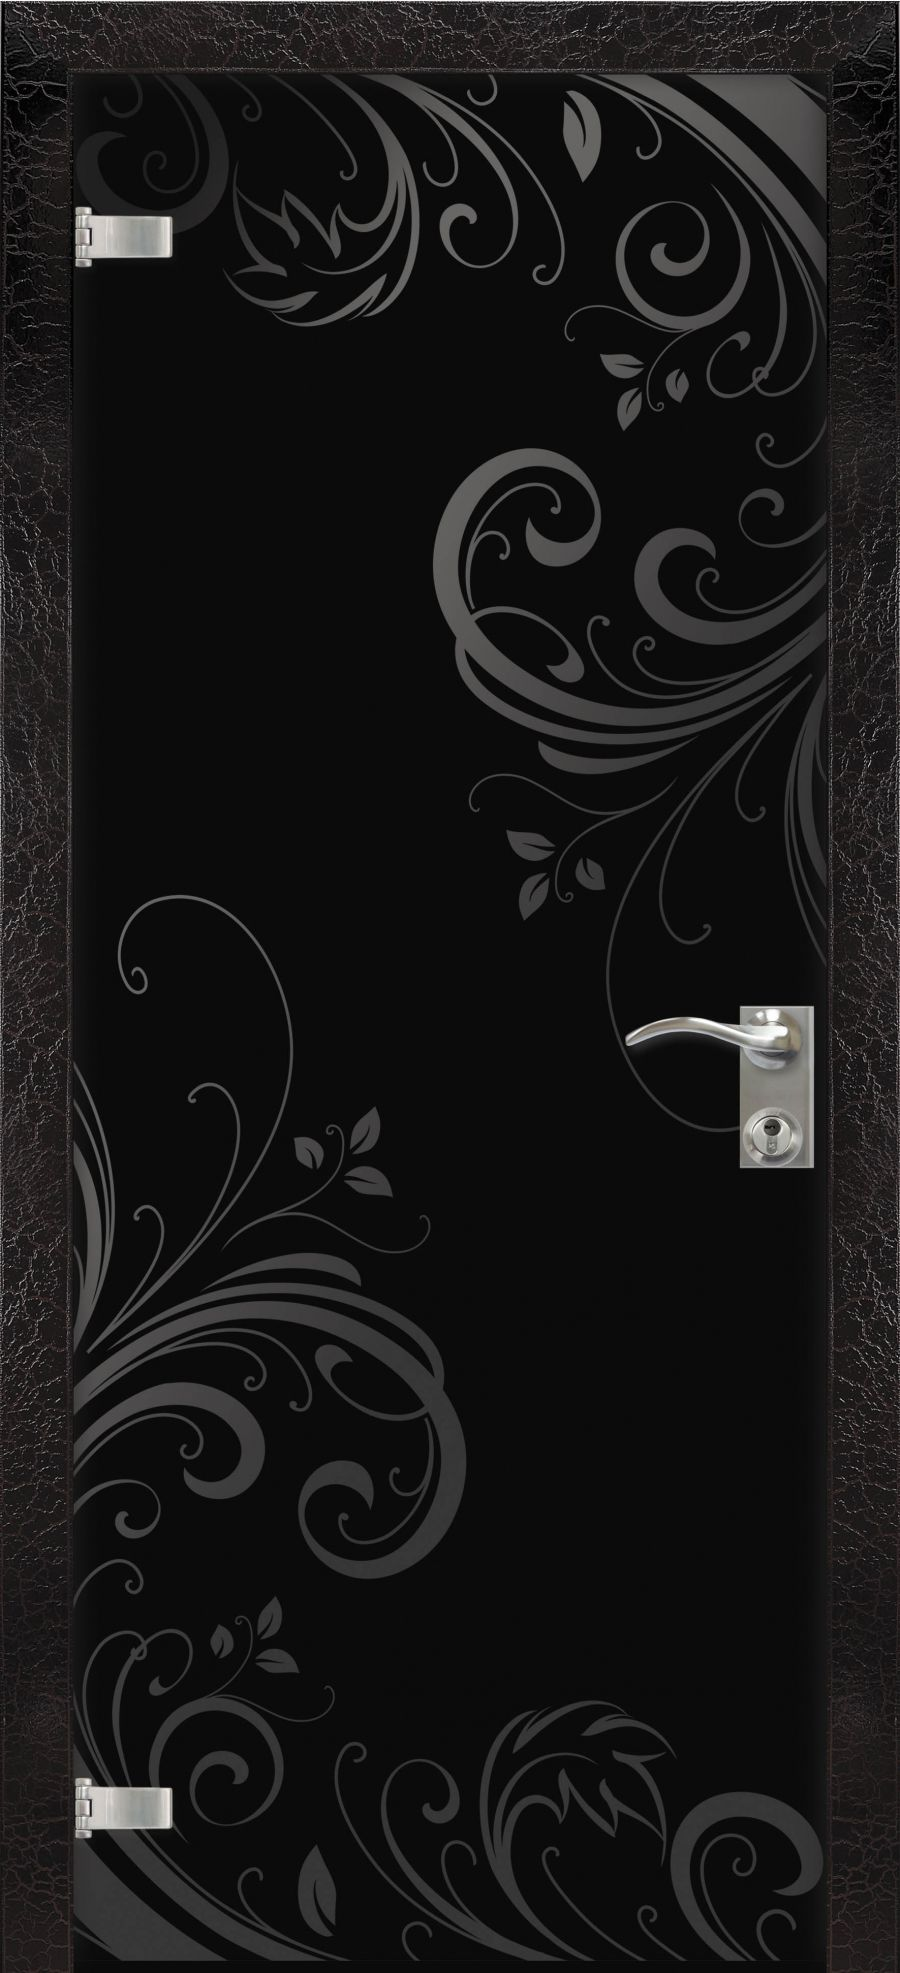 High-tech black glass door with patterns